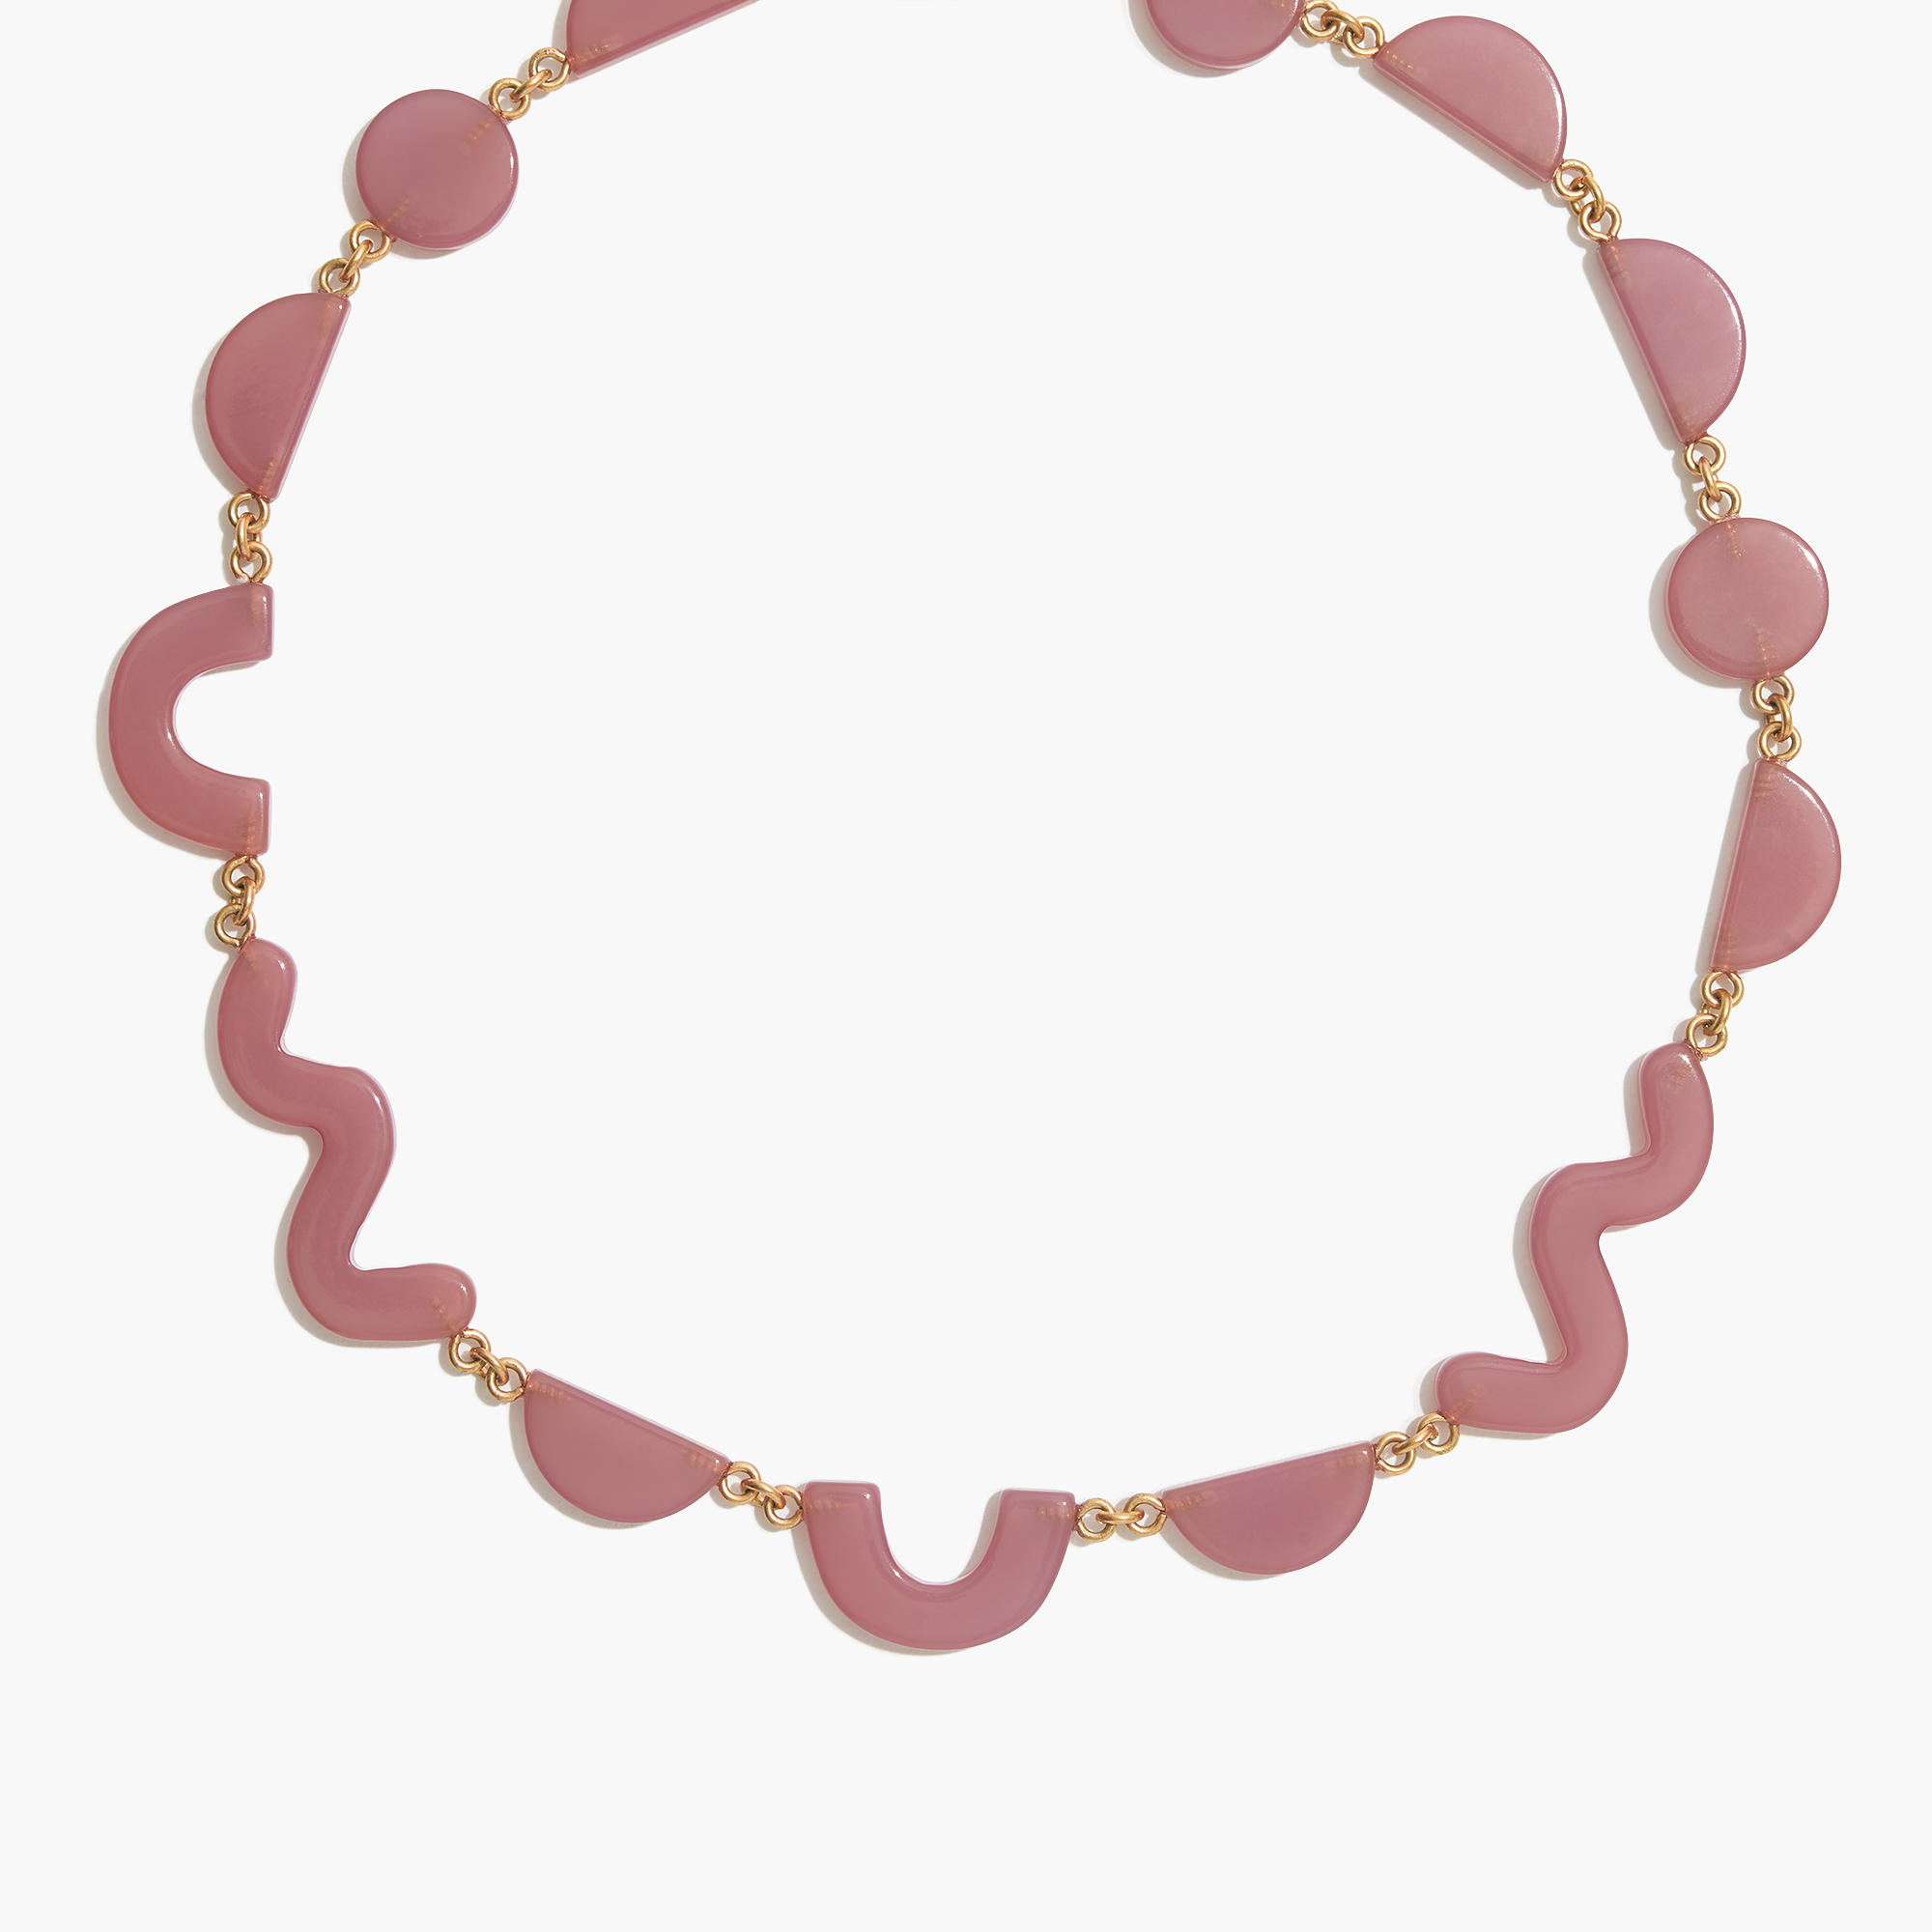 statement home p dot monroe stella necklace